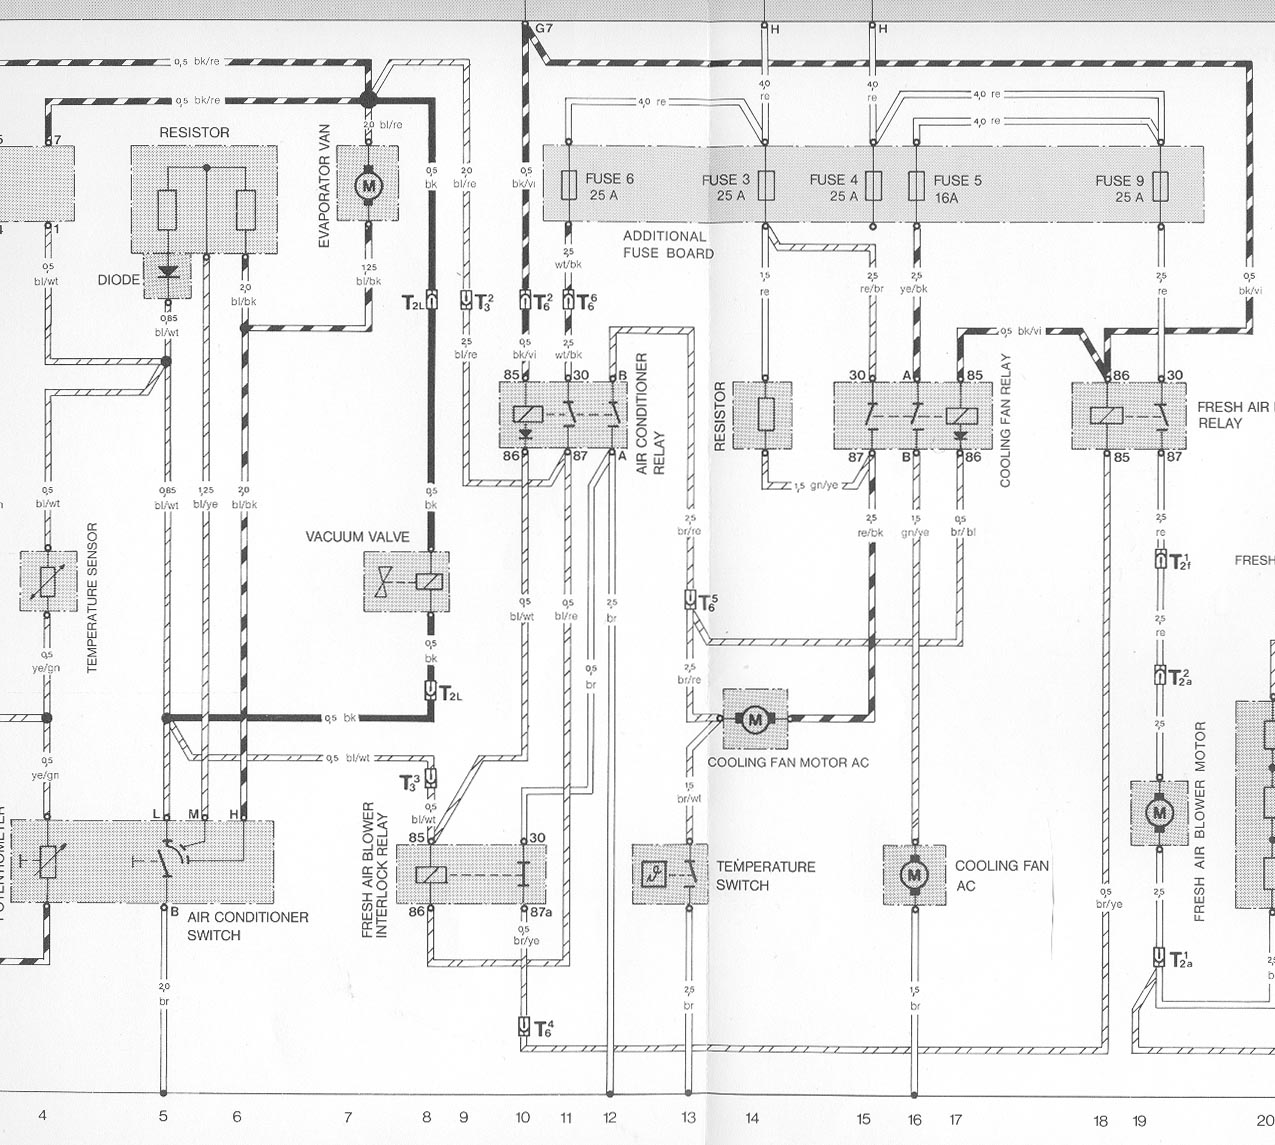 early_cooling_fan_with_ac cooling fan operation and troubleshooting be cool radiator wiring diagram at panicattacktreatment.co